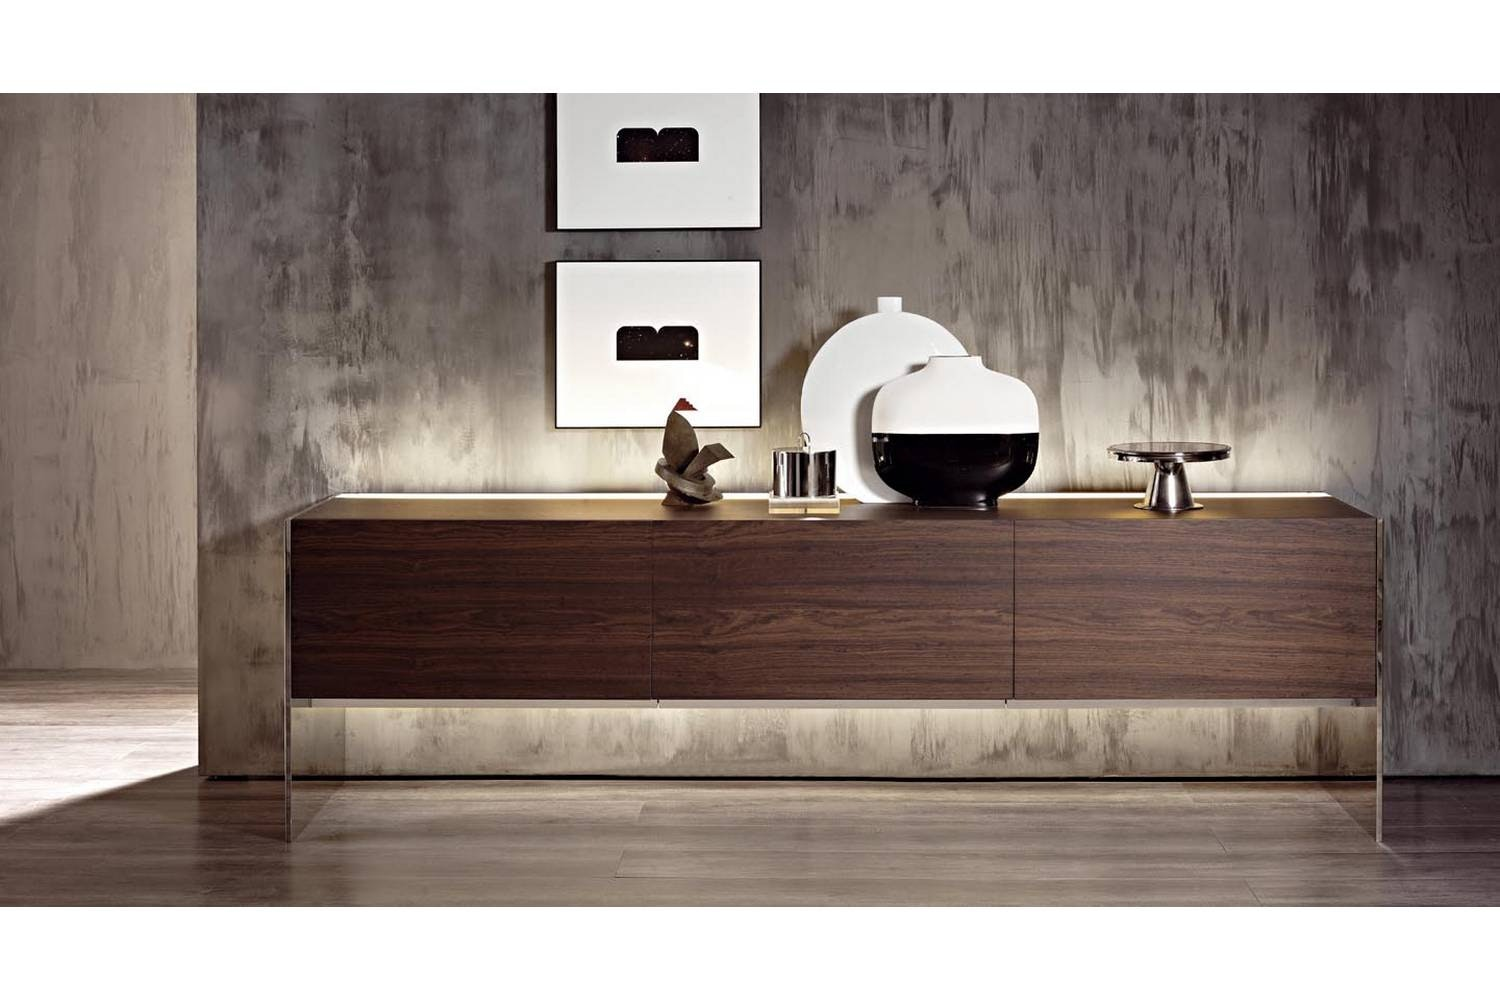 Steel Sideboard by Lodovico Acerbis, Gabriele Buratti for Acerbis